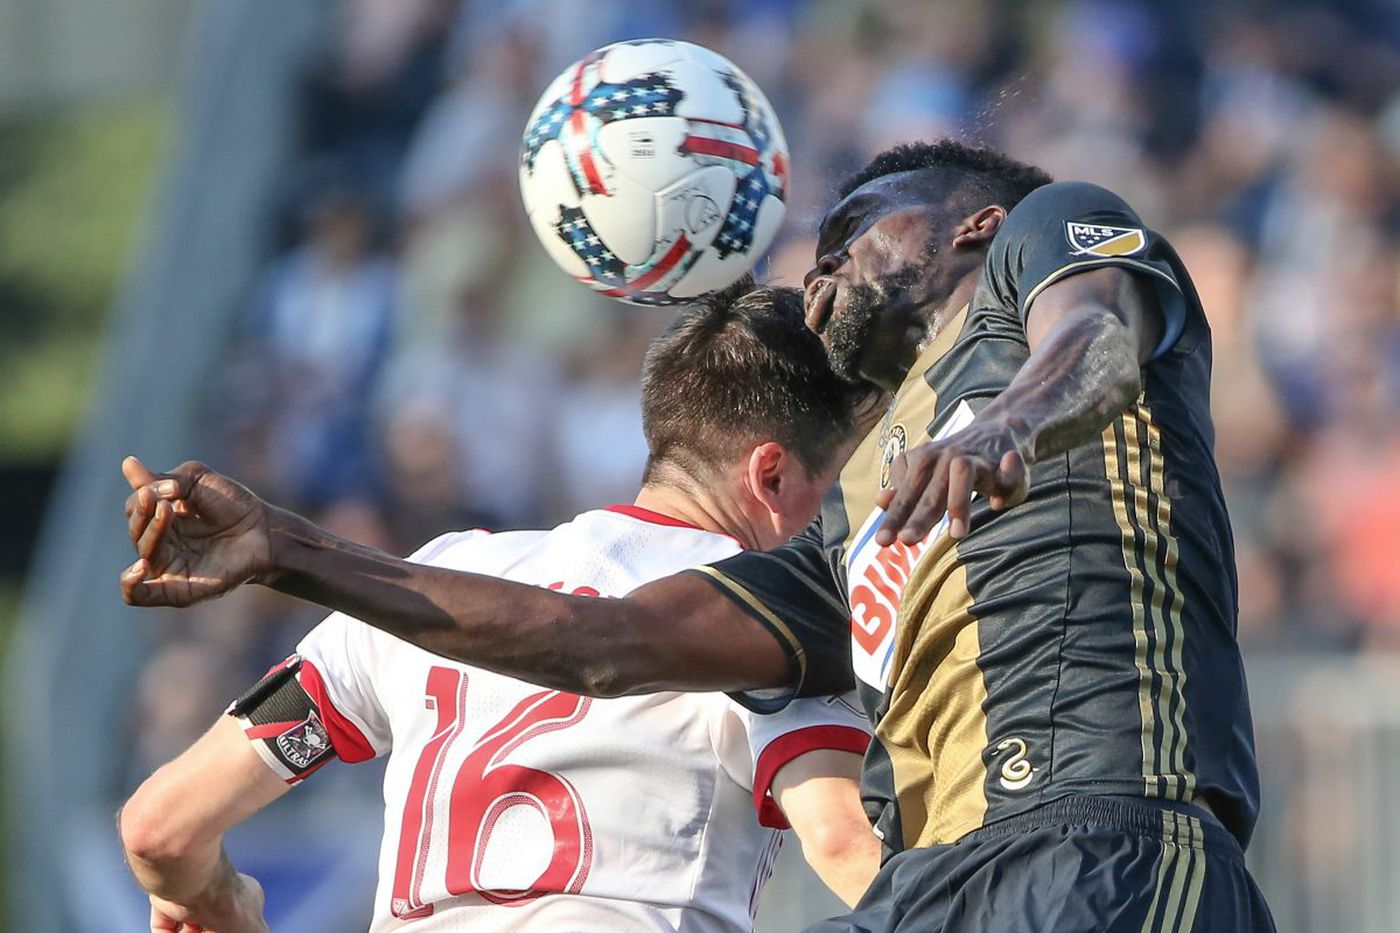 Union fall to New England, 3-0, on the road